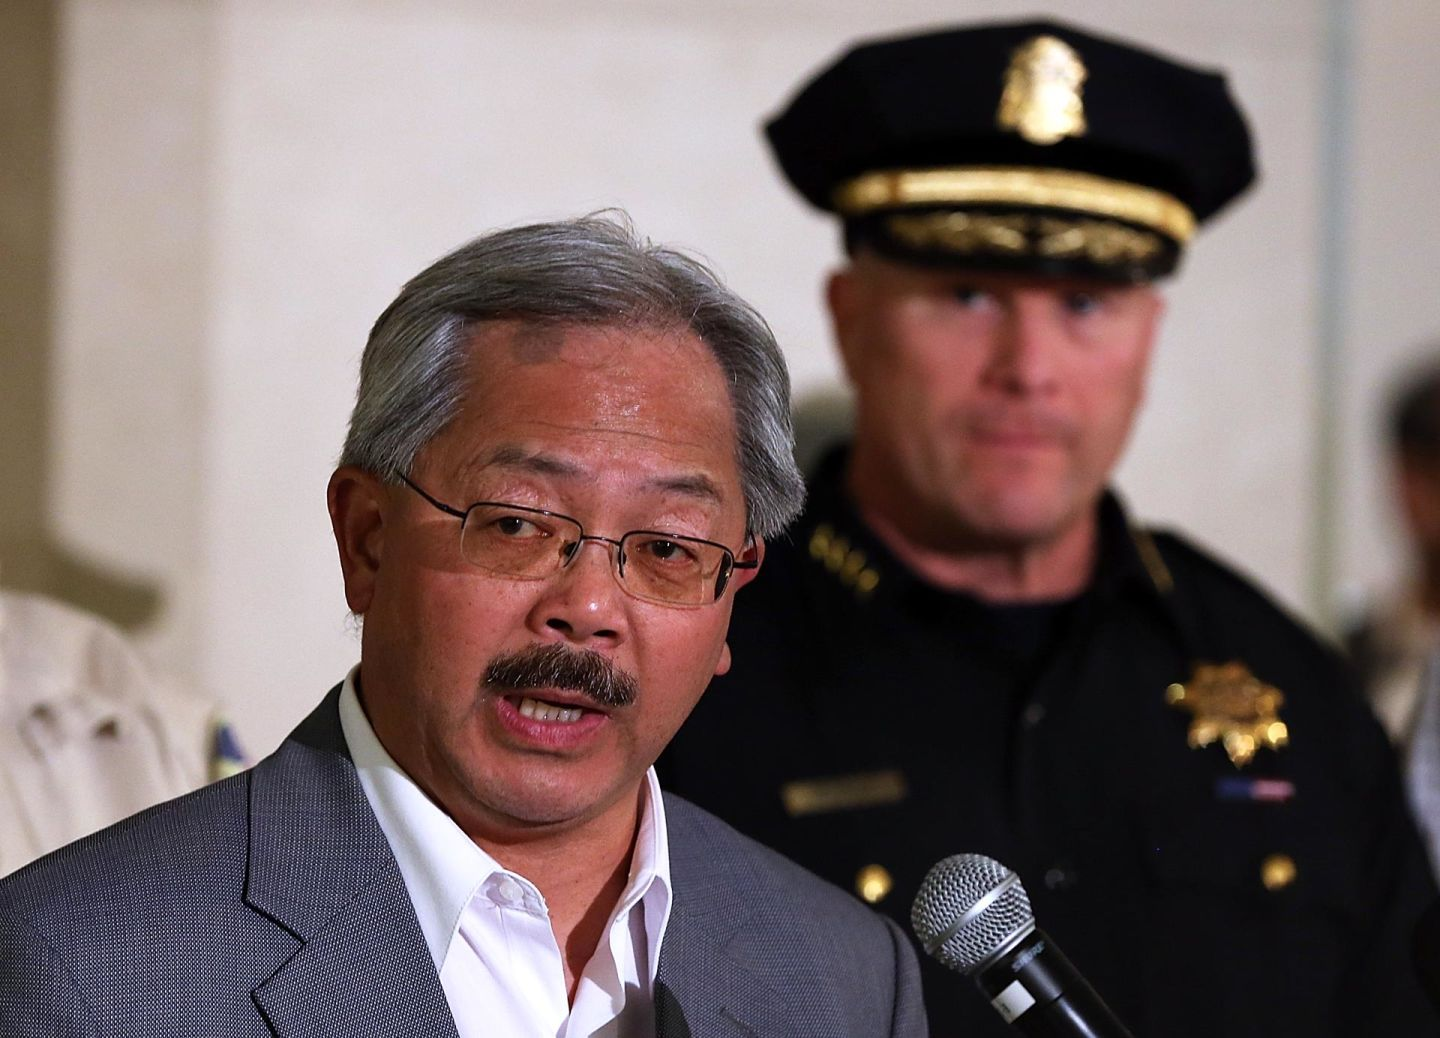 San Francisco Mayor Ed Lee and SFPD Chief Greg Suhr at a 2013 press conference.